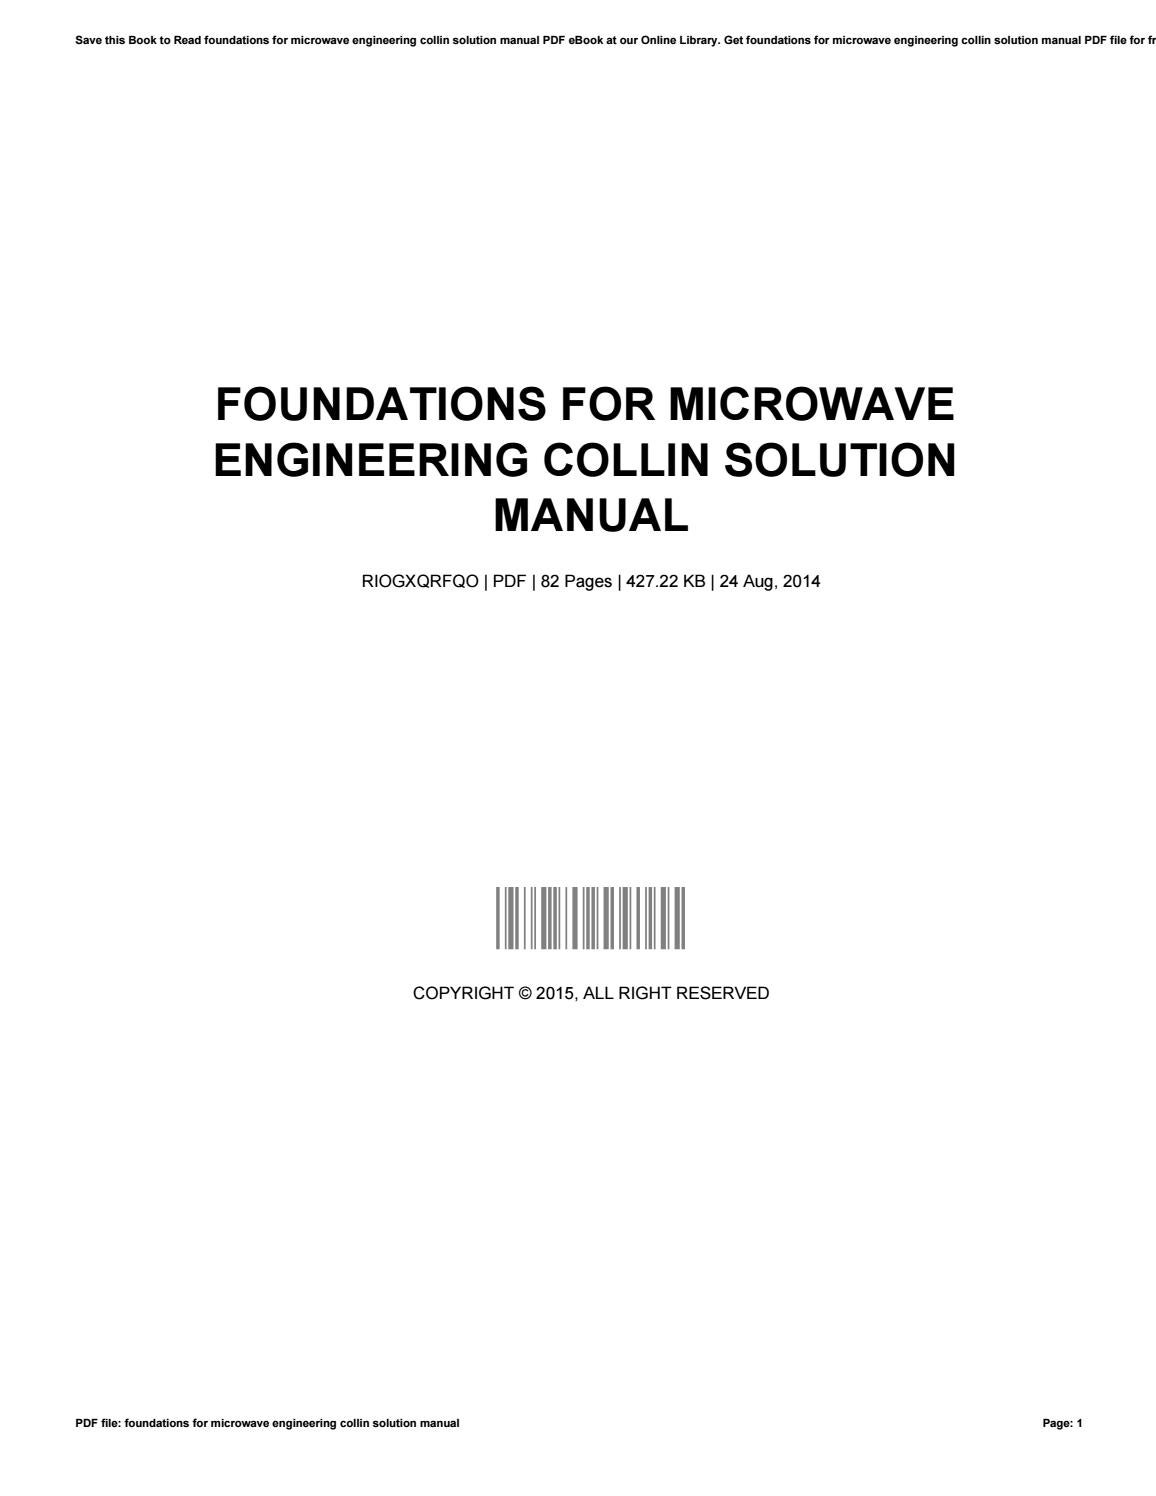 Foundations for microwave engineering collin solution manual by  VickiePollard4937 - issuu